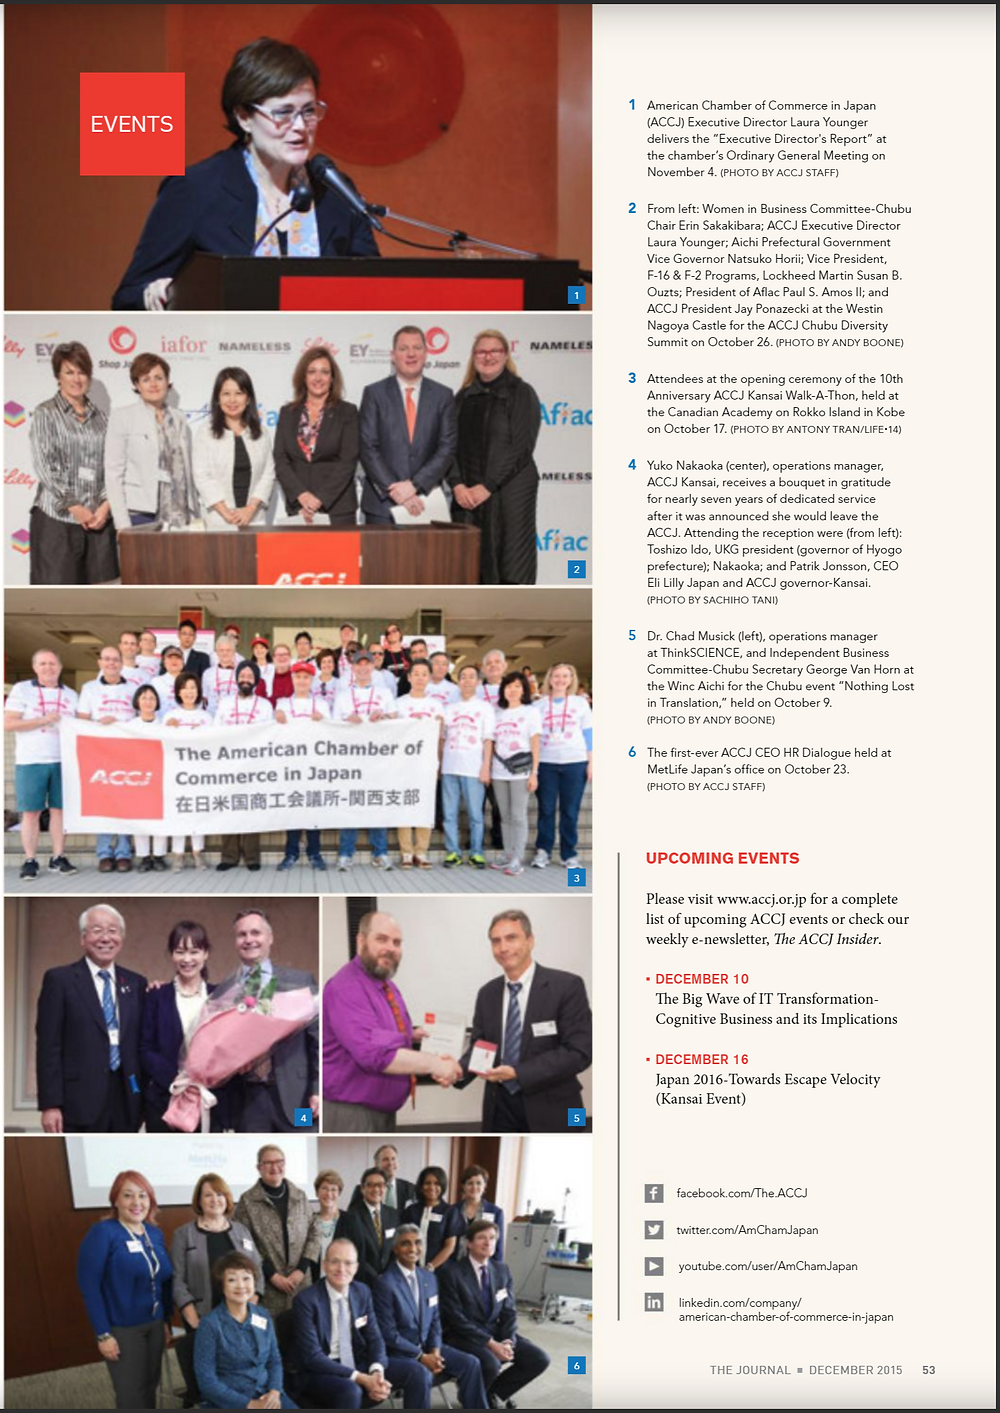 """ACCJ the Journal December 2015 - Contents Vol. 52, Issue 12 https://issuu.com/custom-media-kk/docs/12_the_journal_dec2015    The ACCJ - 在日米国商工会議所  http://www.accj.or.jp   Panelists of the """"ACCJ Panel Discussion with the Union of Kansai Governments"""" held at the Ritz Carlton Osaka on Friday, October 16 2015        Attendees at the opening ceremony of the 10th Anniversary ACCJ Kansai Walk-A-Thon, held at the Canadian Academy on Rokko Island in Kobe on October 17 2015     """